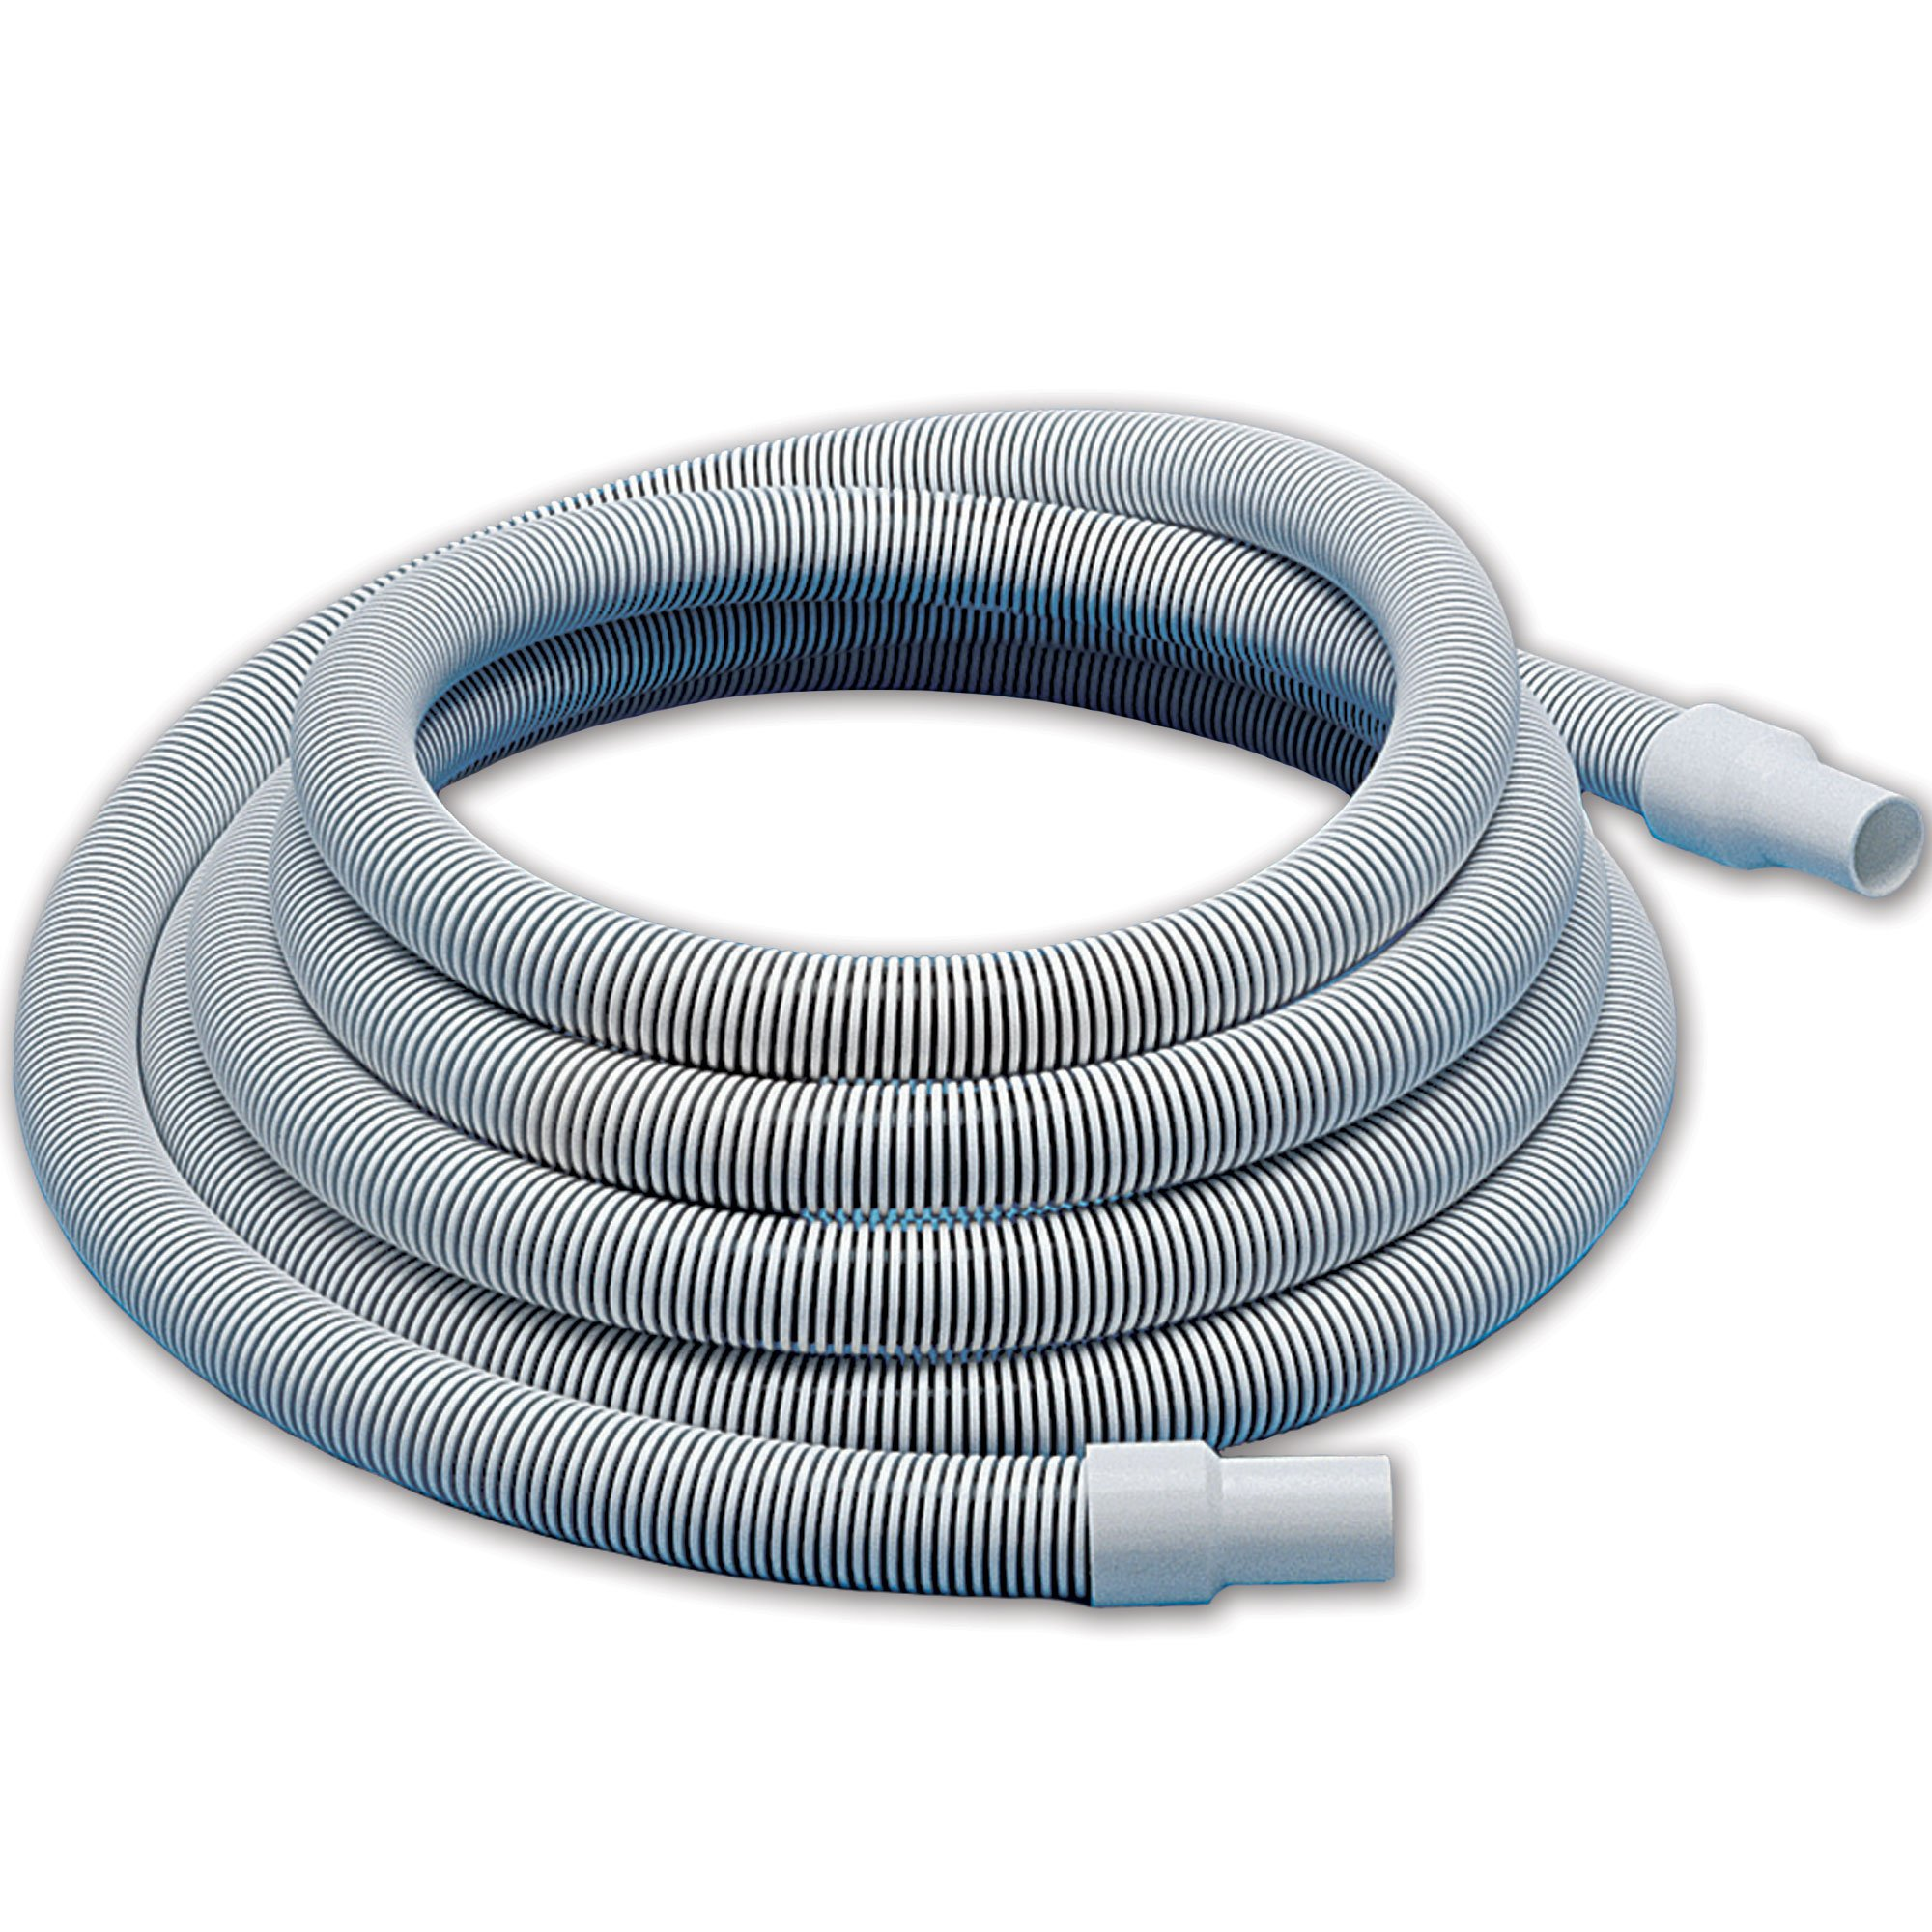 2 Inch Heavy-Duty Commercial Grade Pool Vacuum Hose - 35 Feet by Haviland